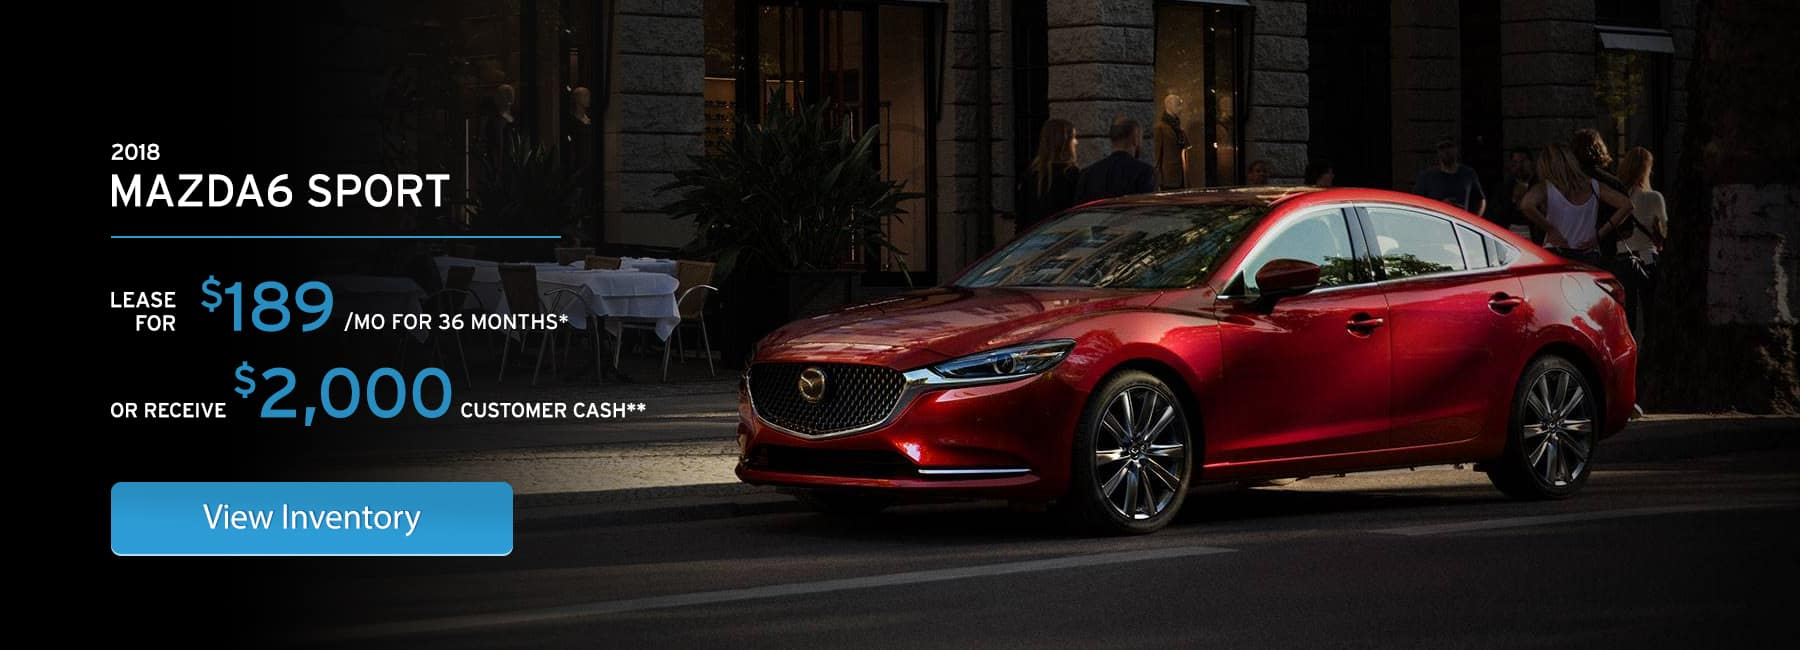 Mazda6 Offer in Elgin, Il